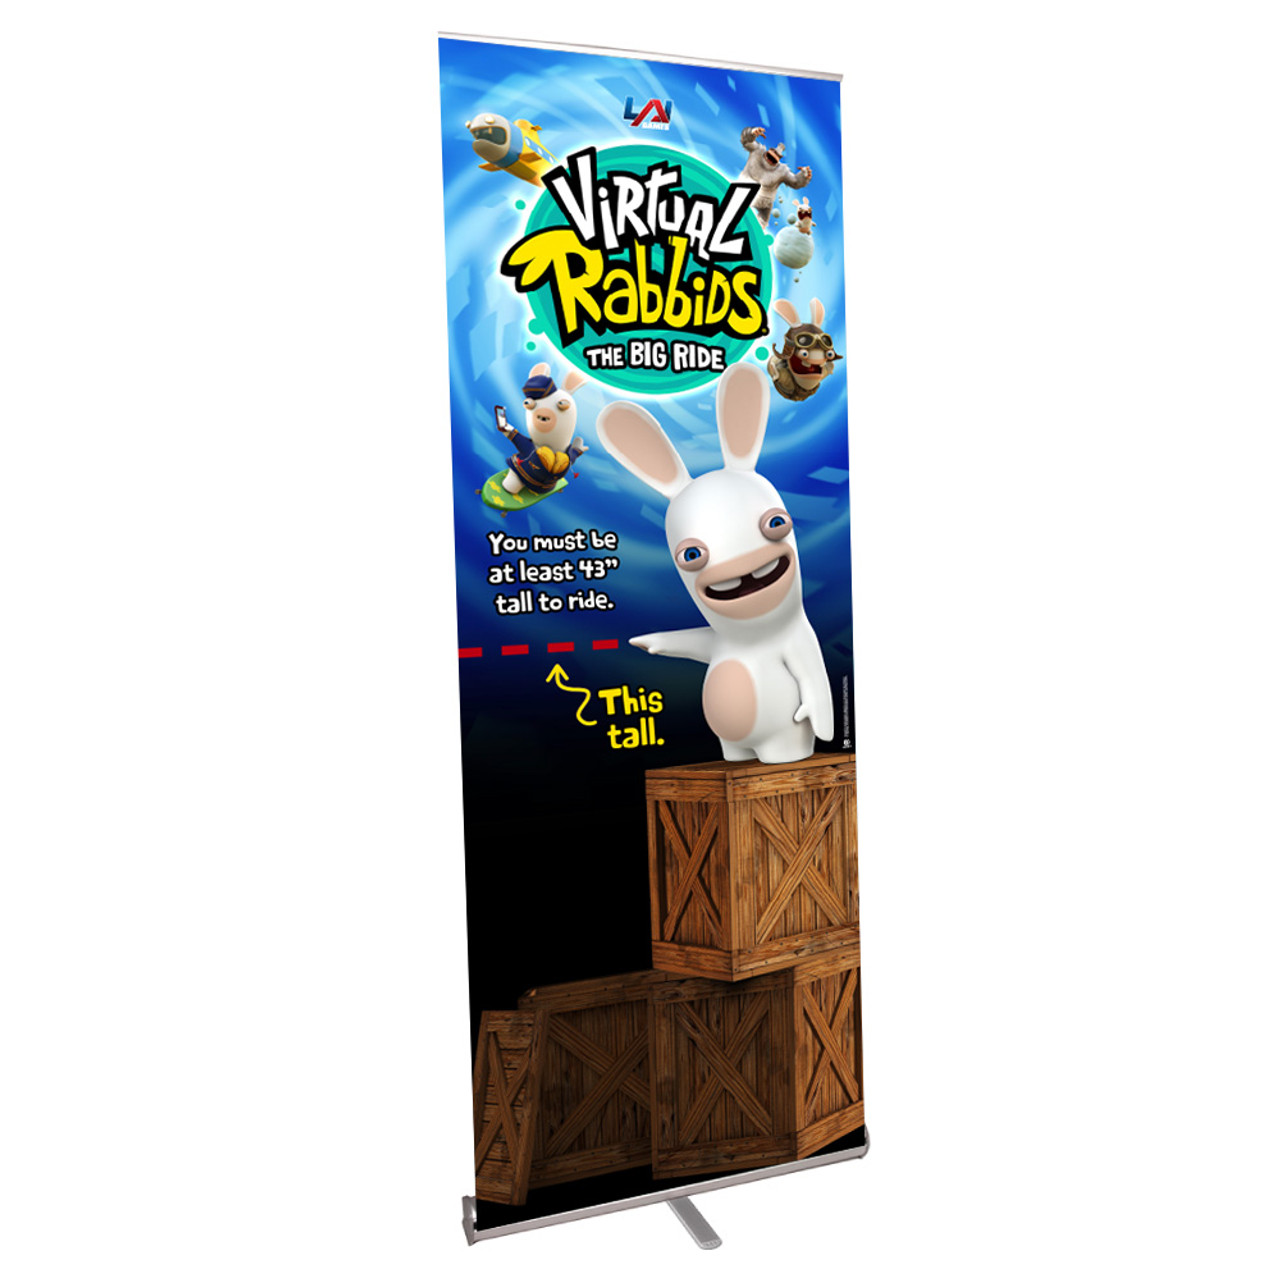 Pull Up Banner for Virtual Rabbids with Height Requirements